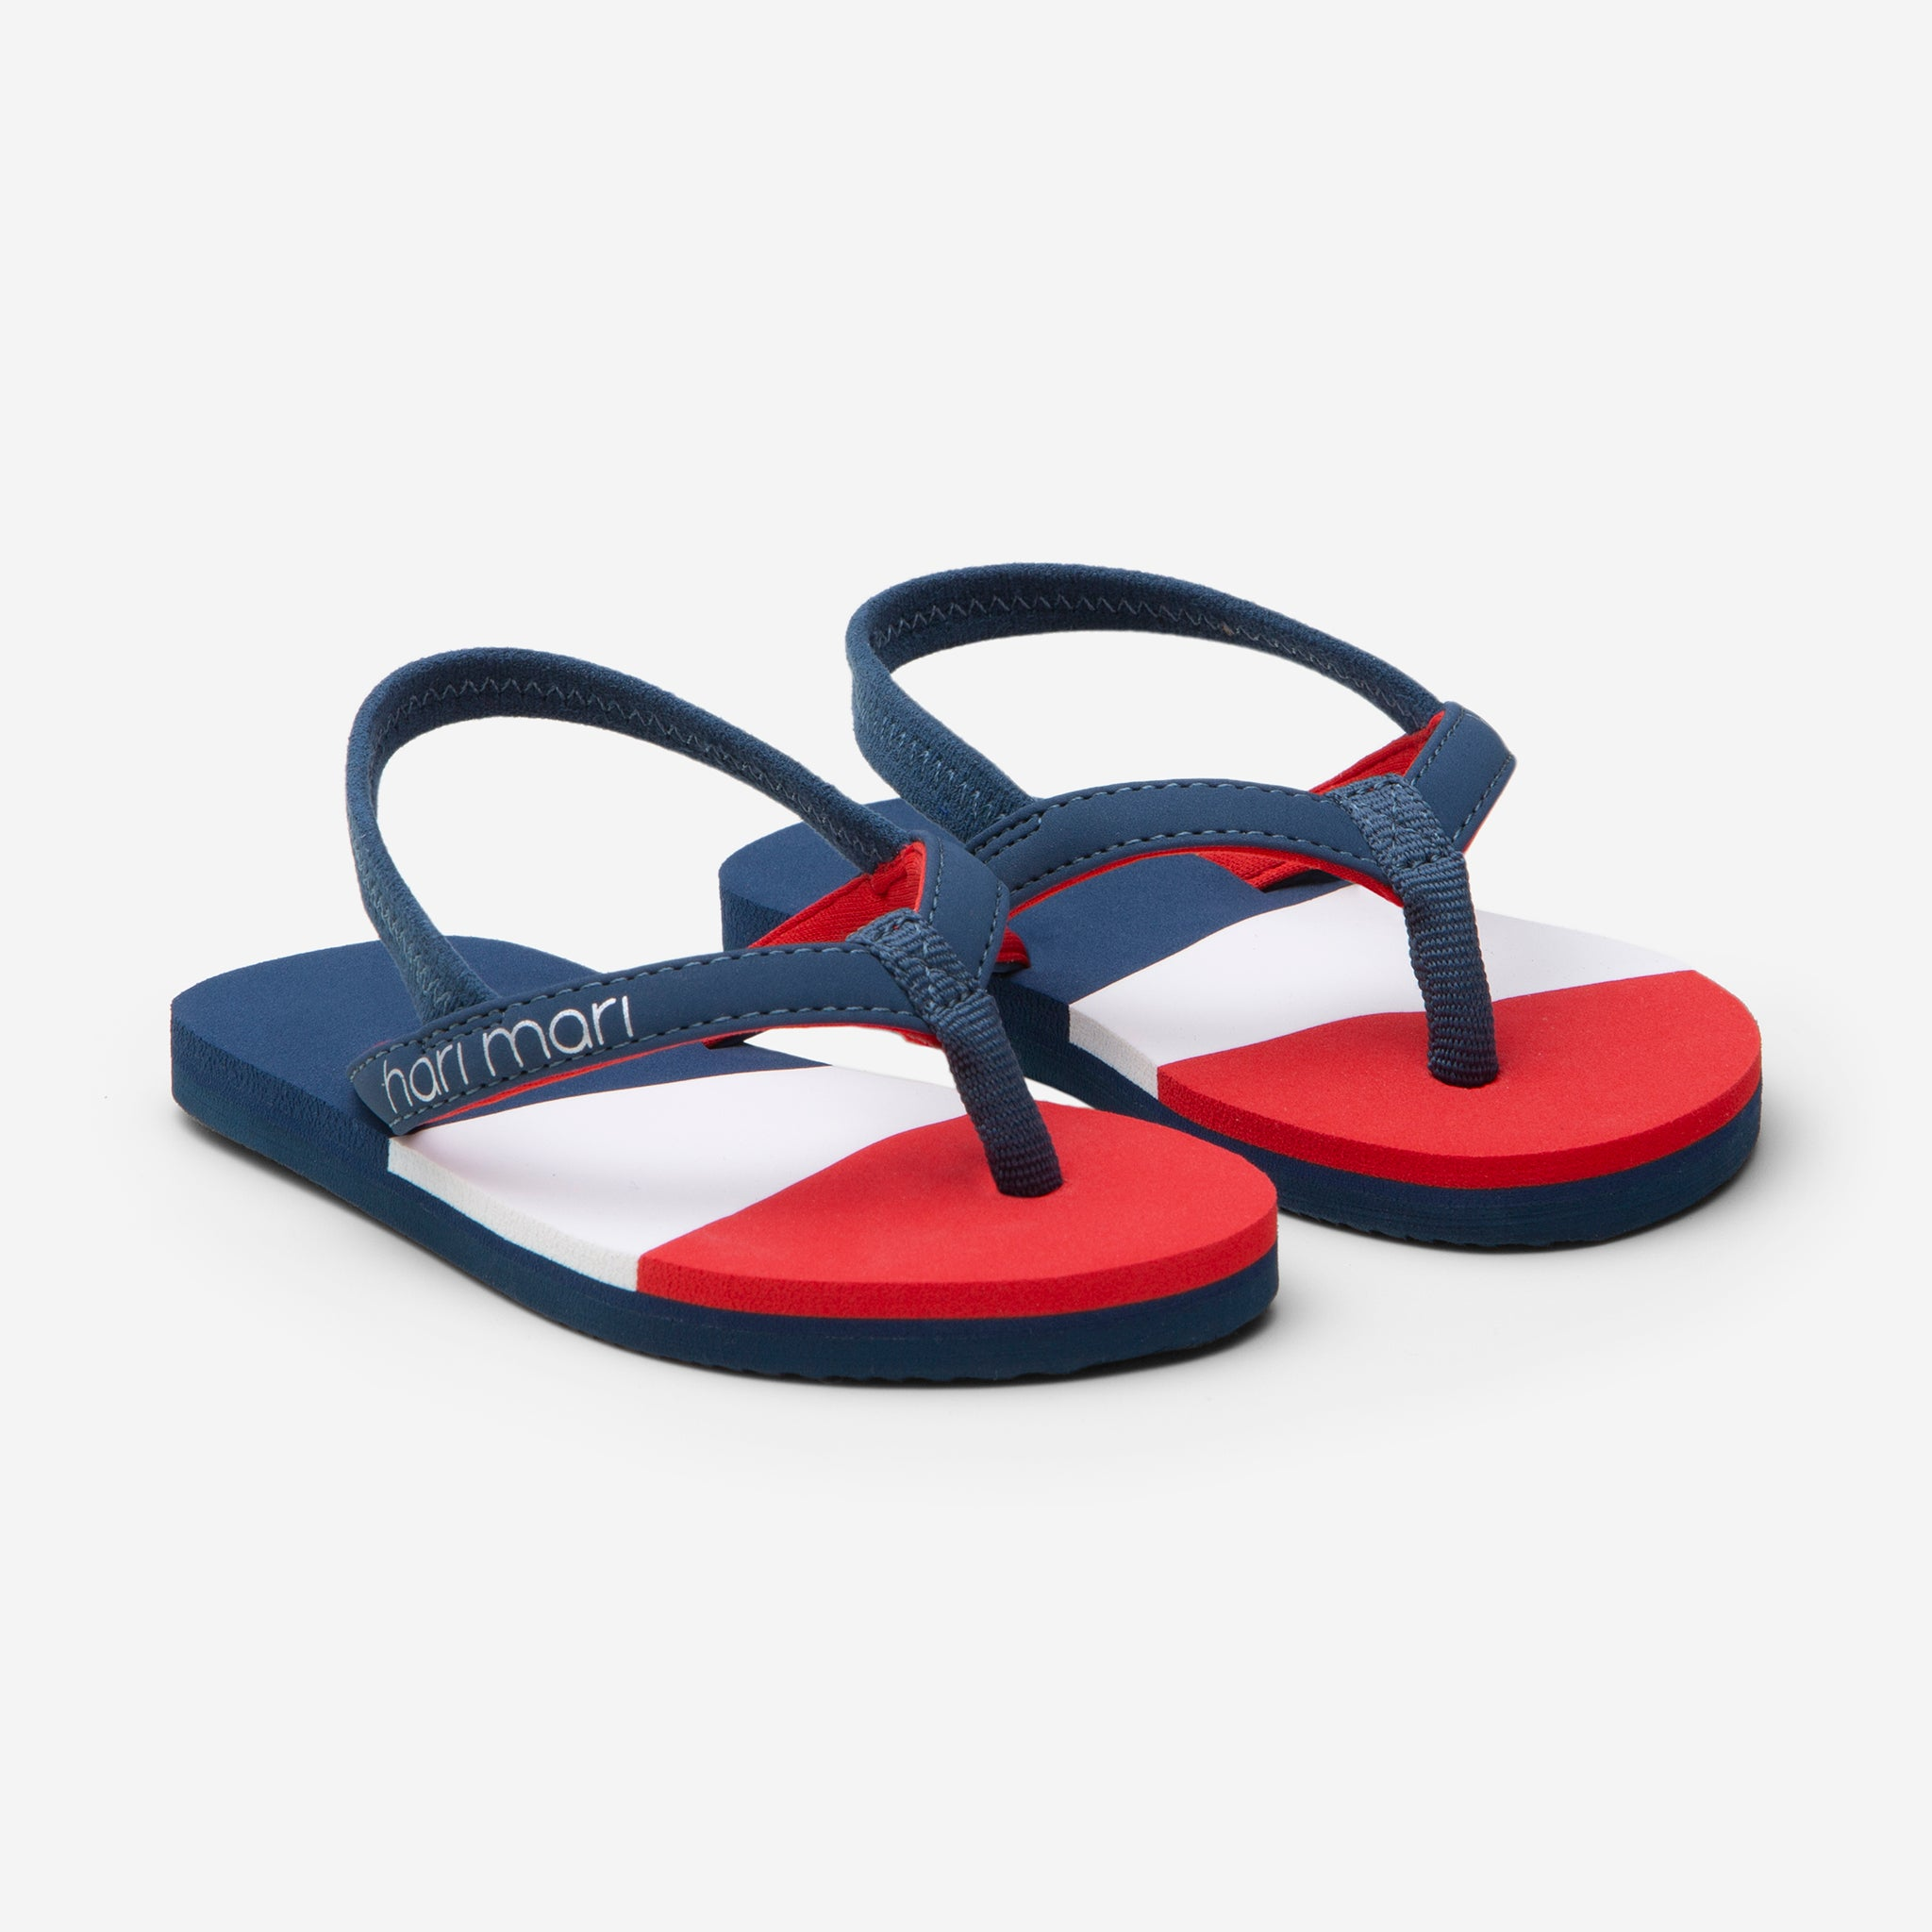 Hari Mari meadows asana kids flip flops in navy/red/lily on white background